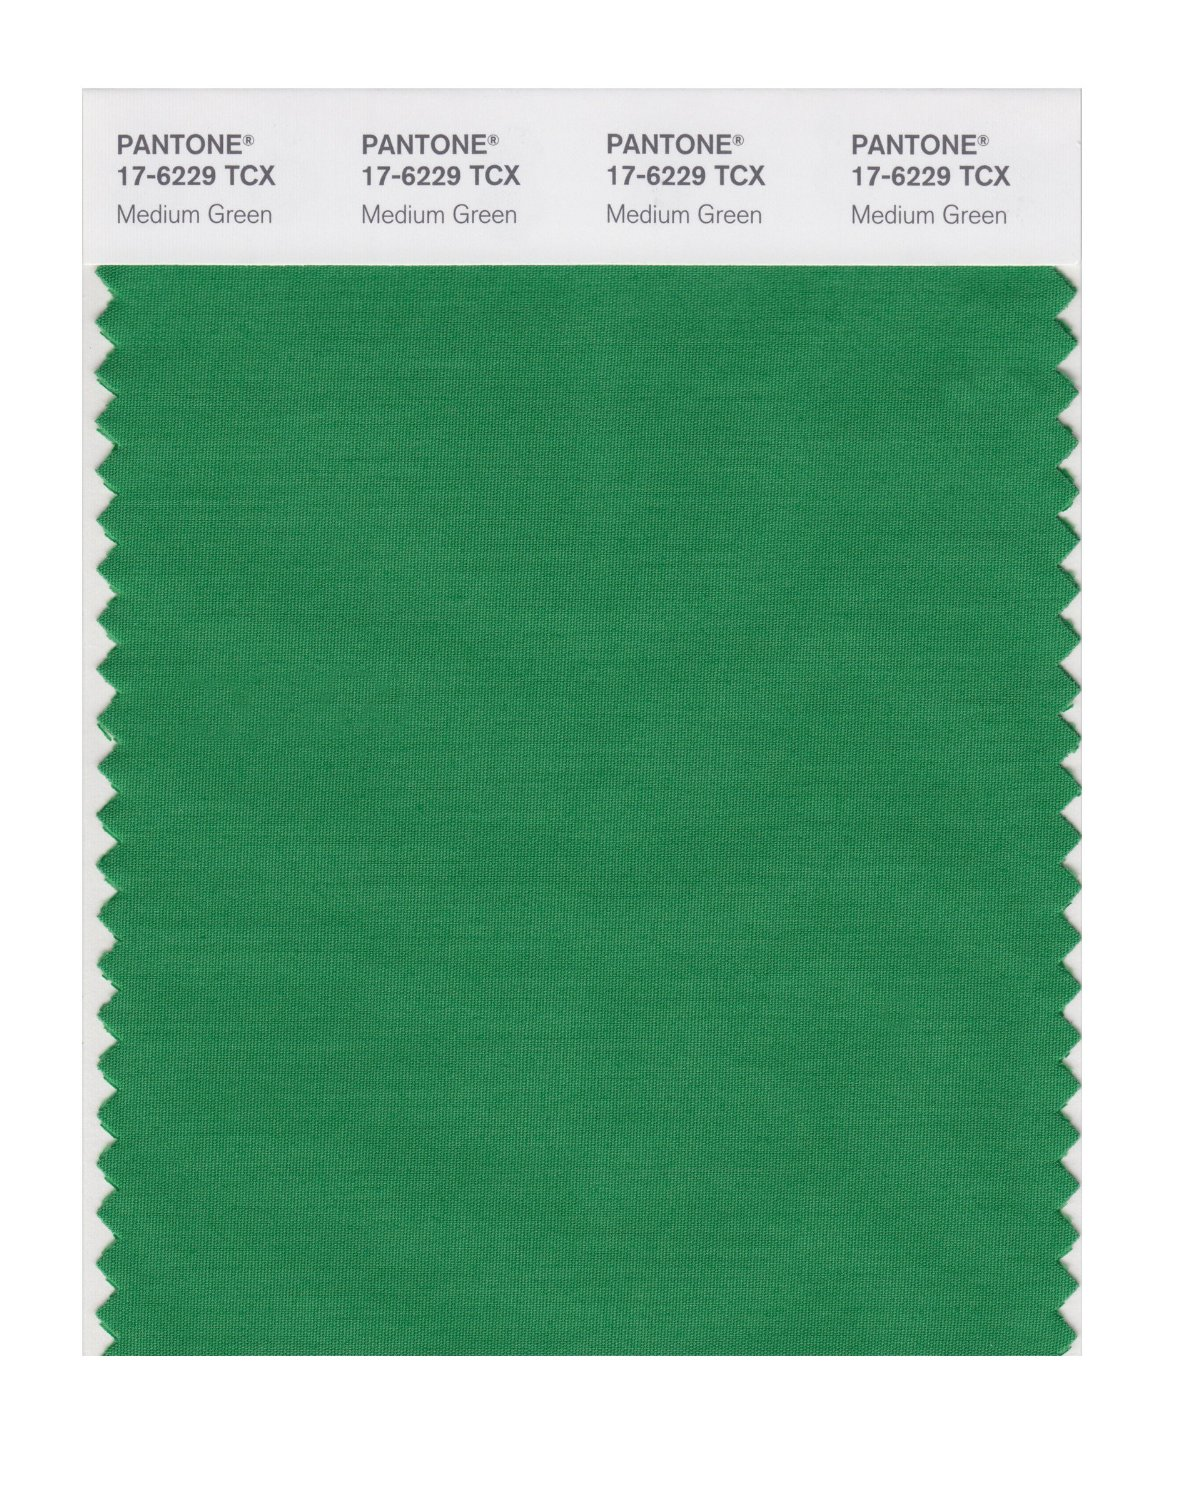 Pantone Smart Swatch 17-6229 Medium Green